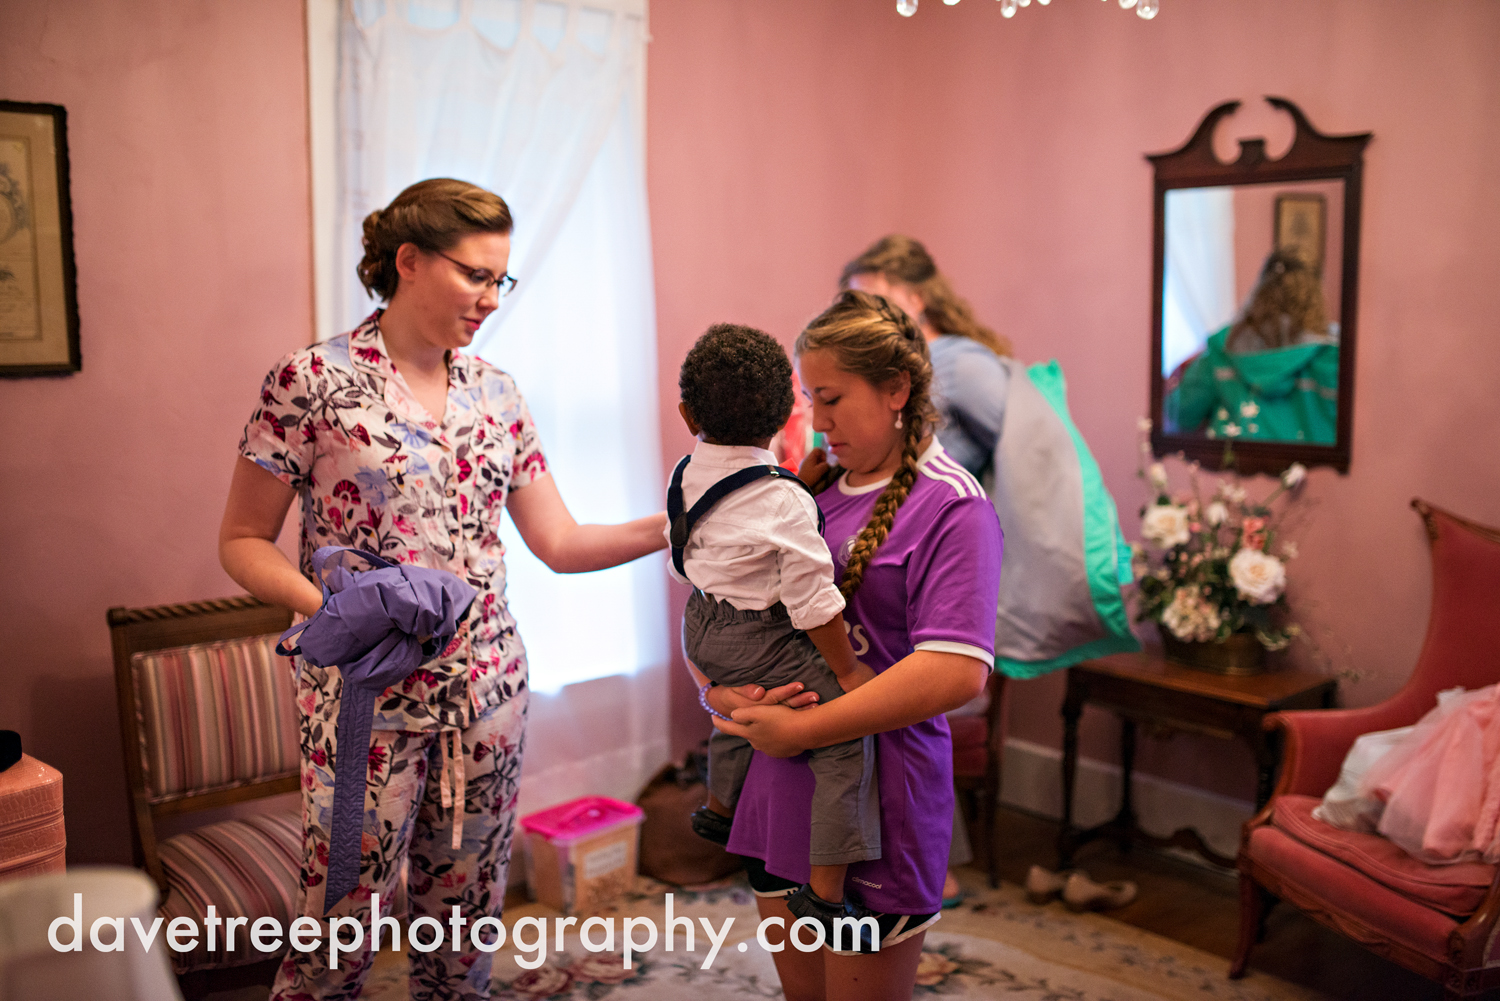 grand_haven_wedding_photographer_weaver_house_wedding_097.jpg